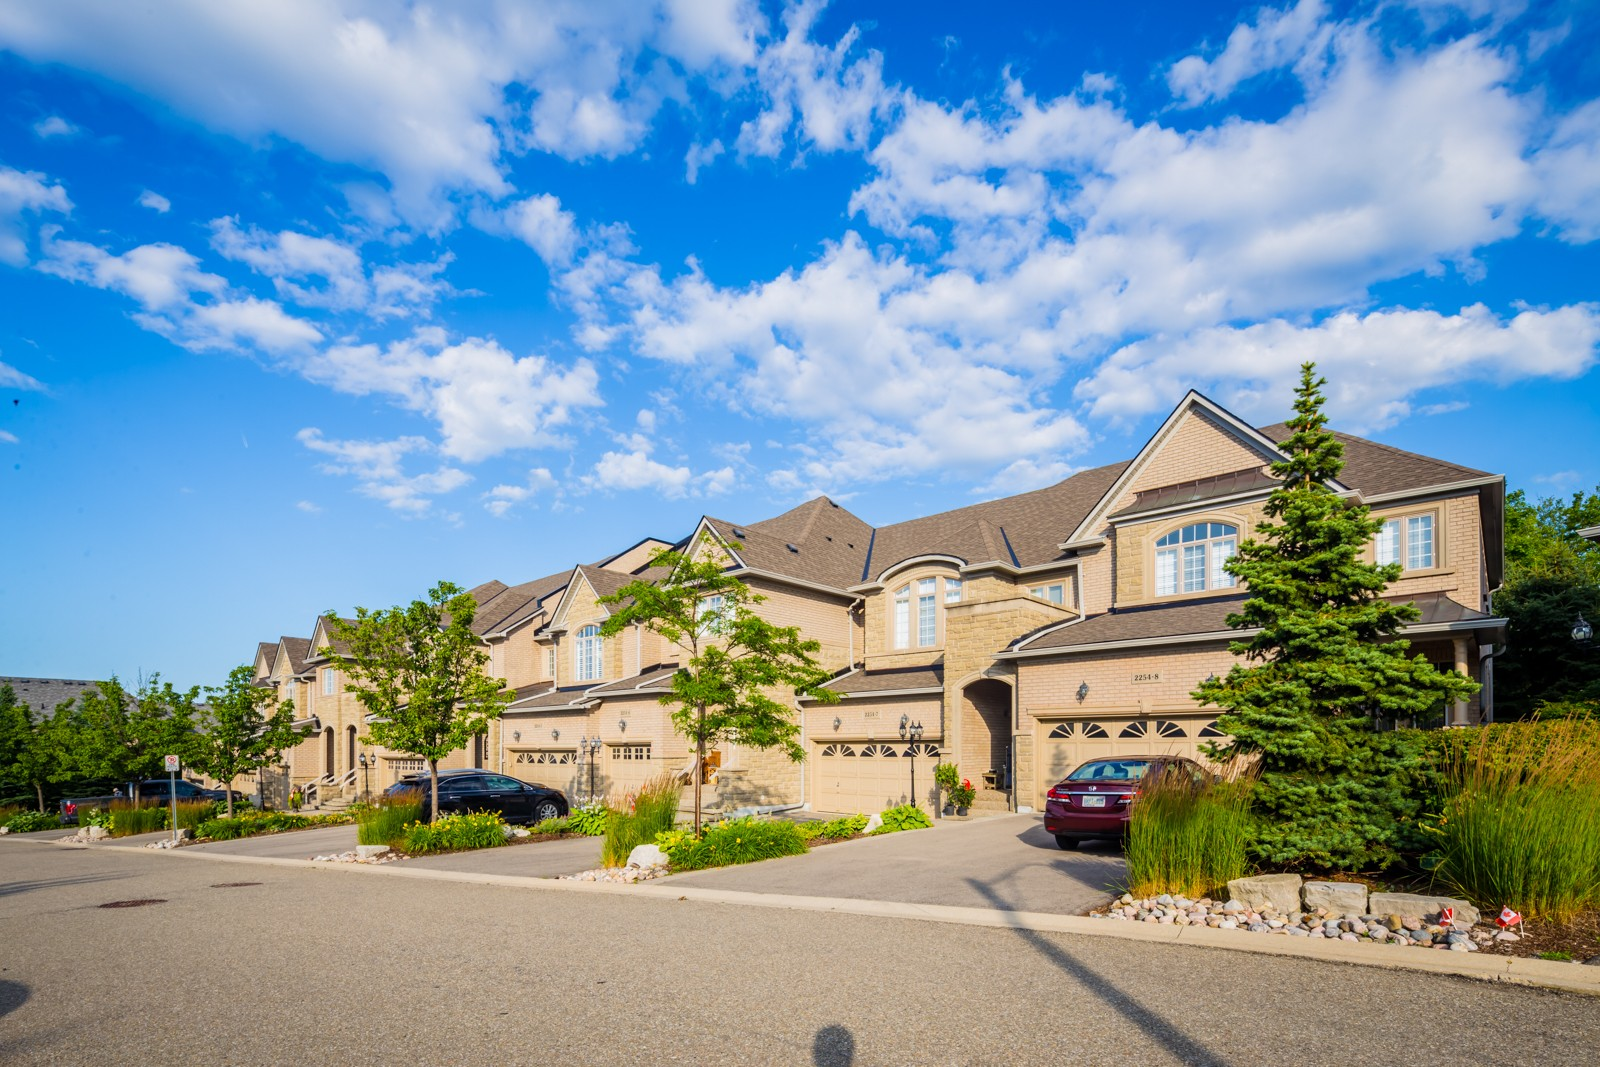 2250 Rockingham Dr Townhouses at 2250 Rockingham Dr, Oakville 1